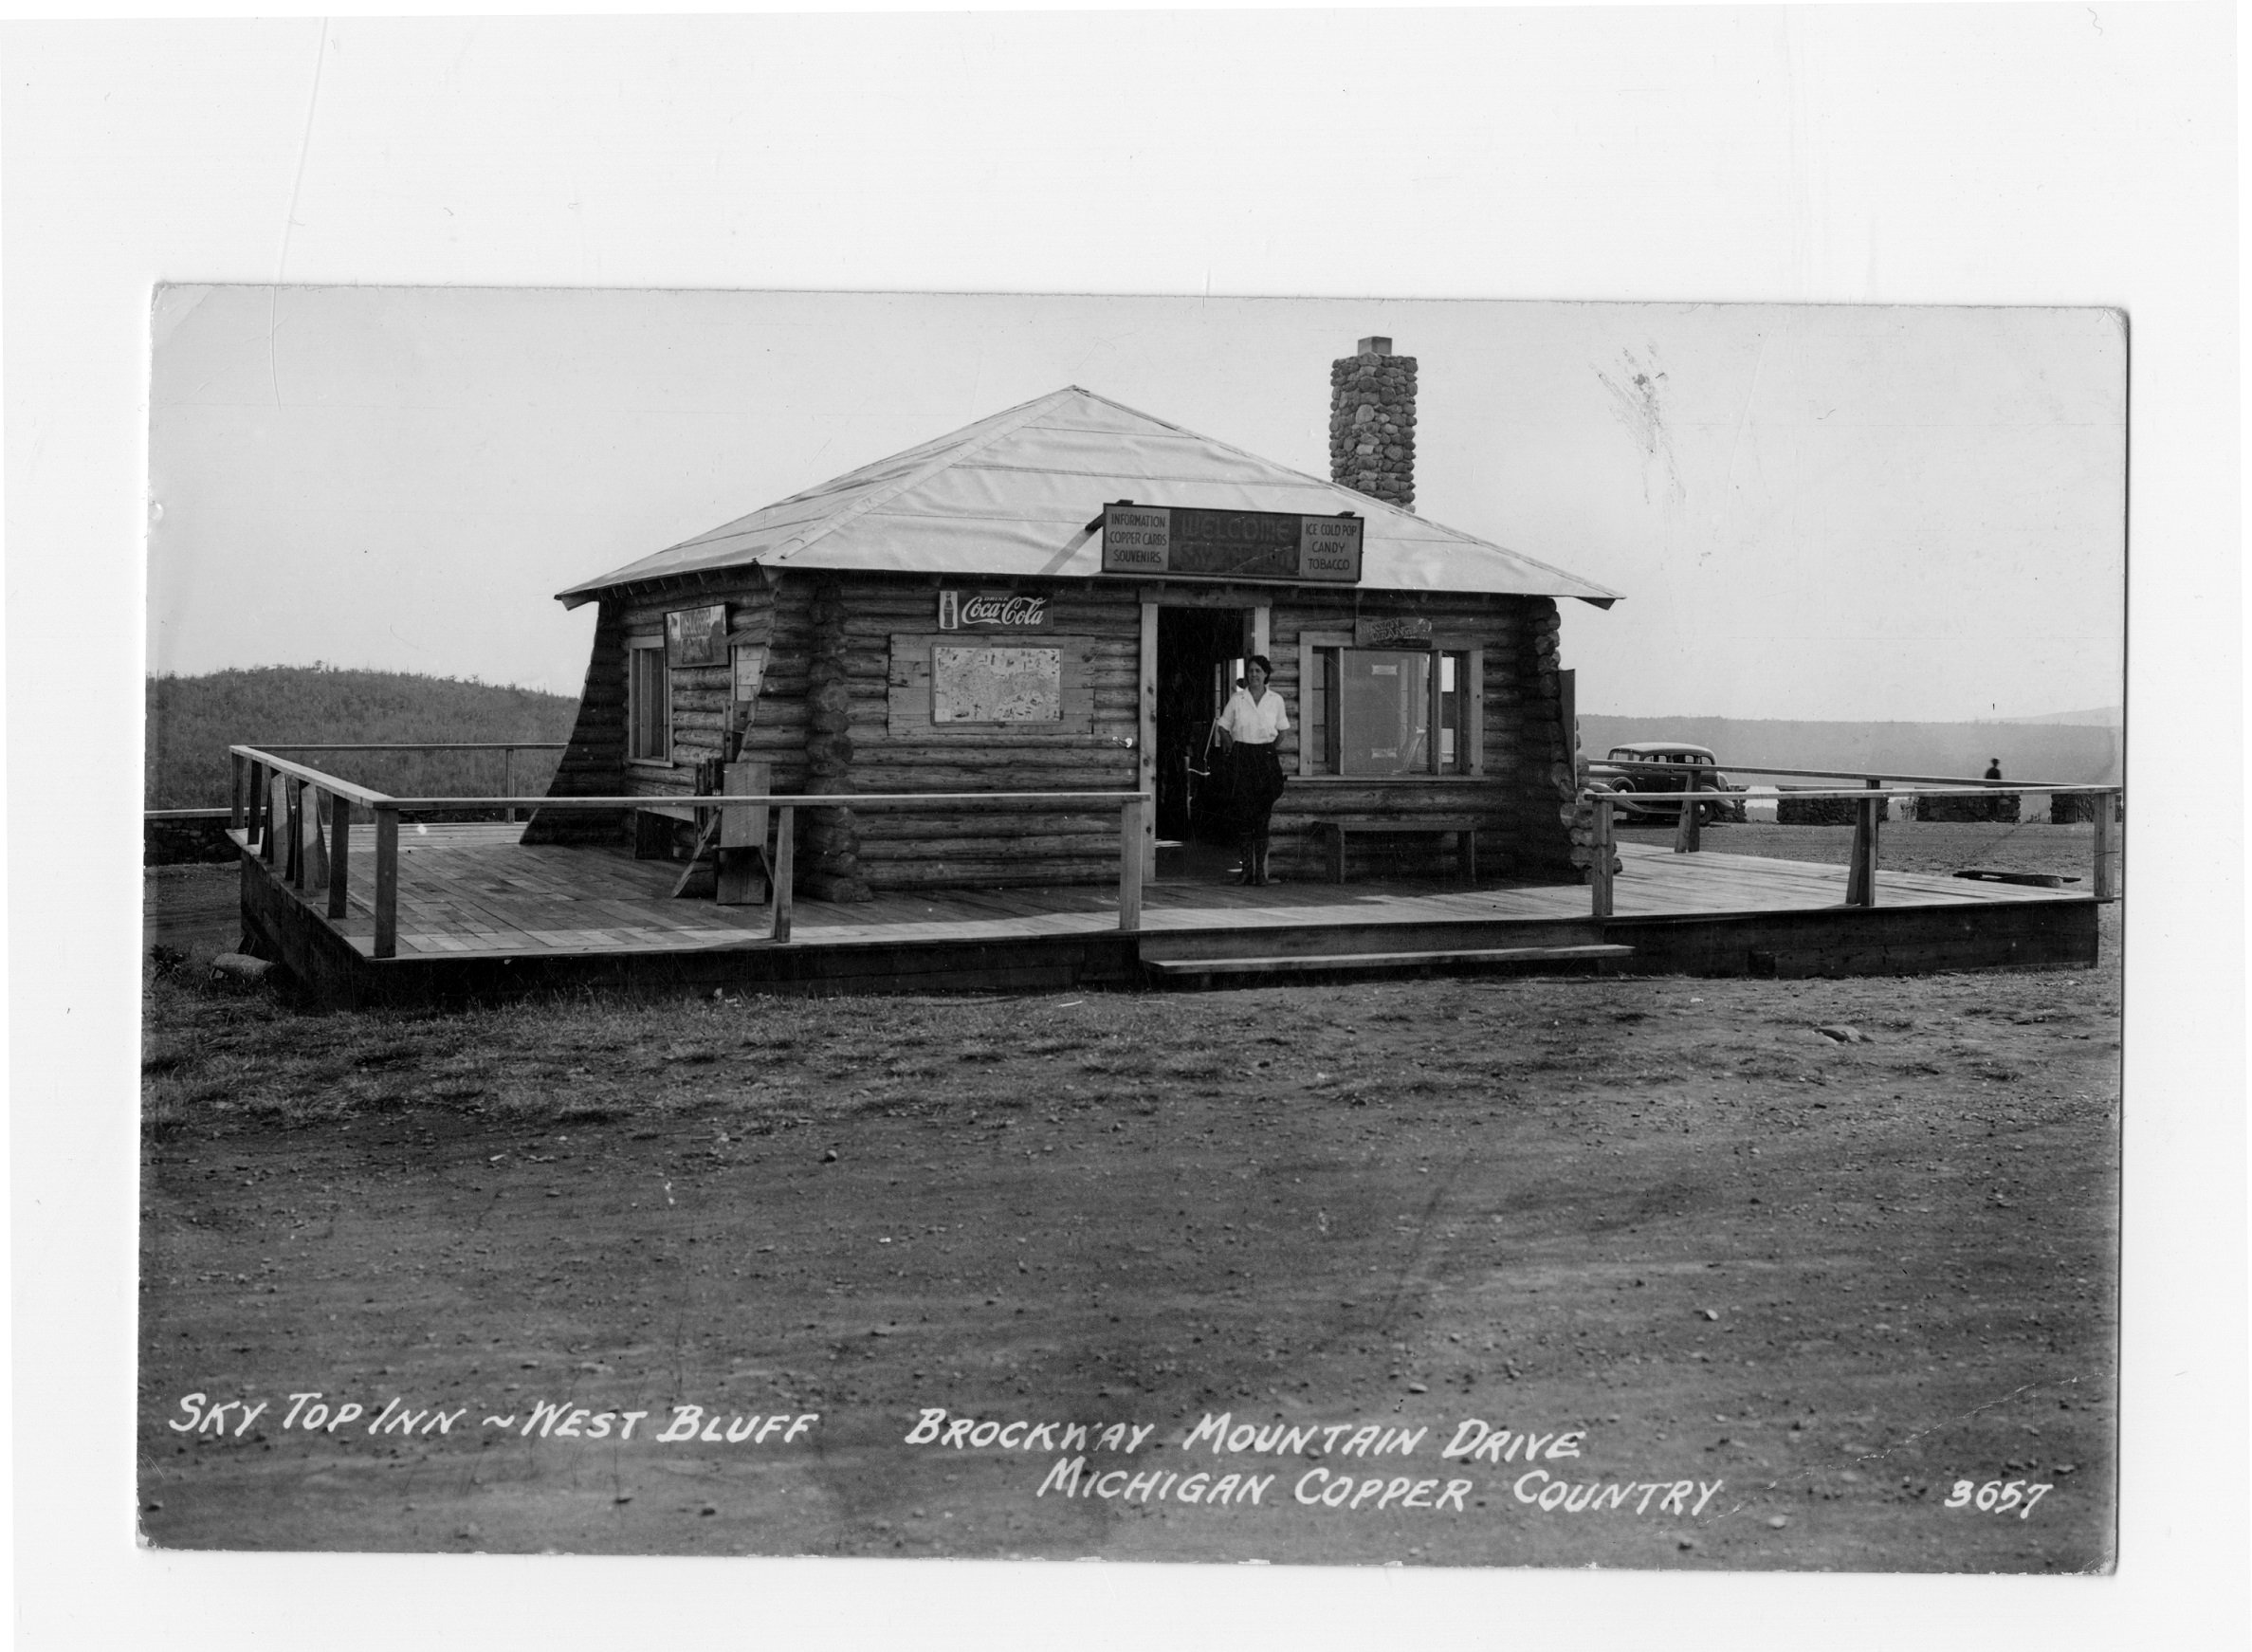 Image of log cabin building with many signs